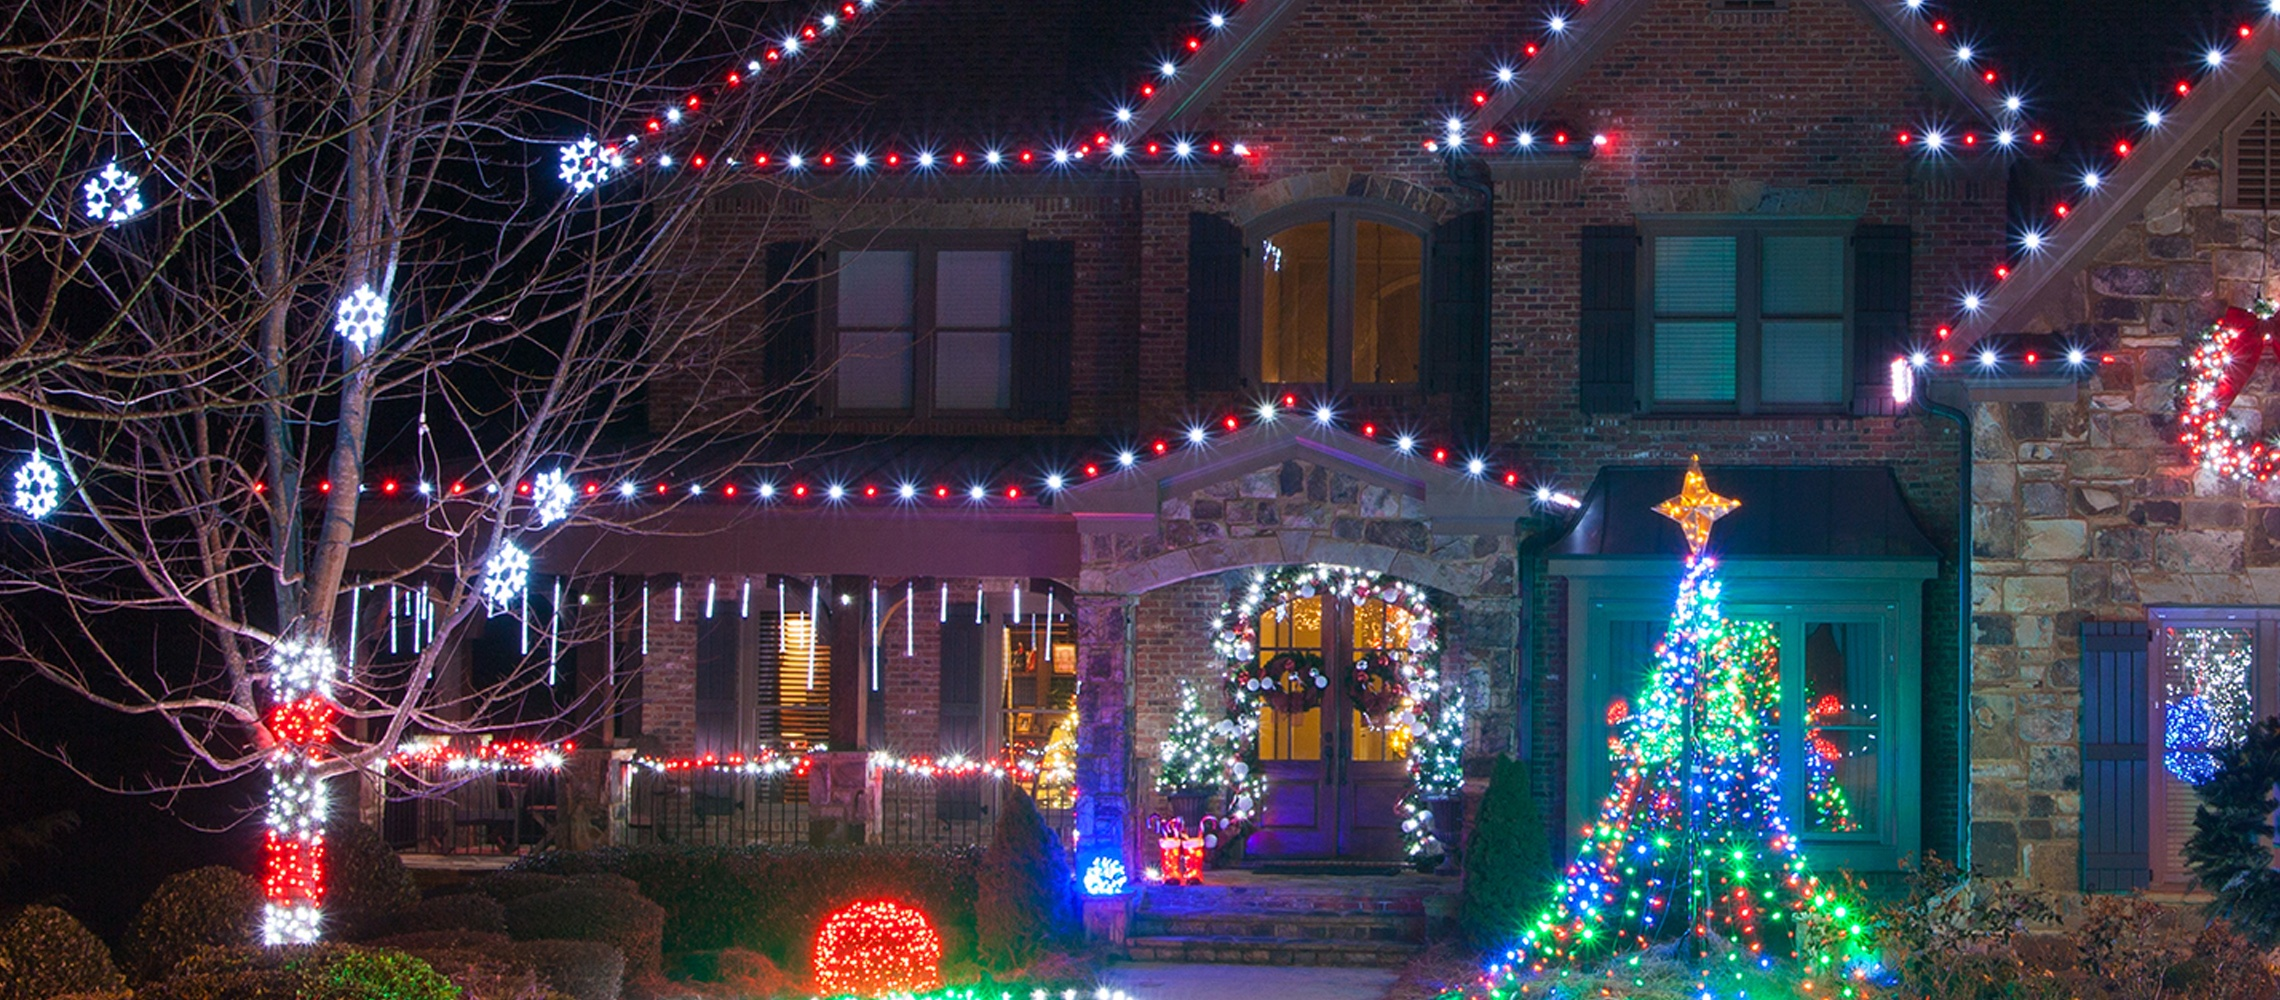 outdoor xmas lighting. Outdoor Xmas Lighting. Grand-cascade-roof-lights-image9.jpg Lighting